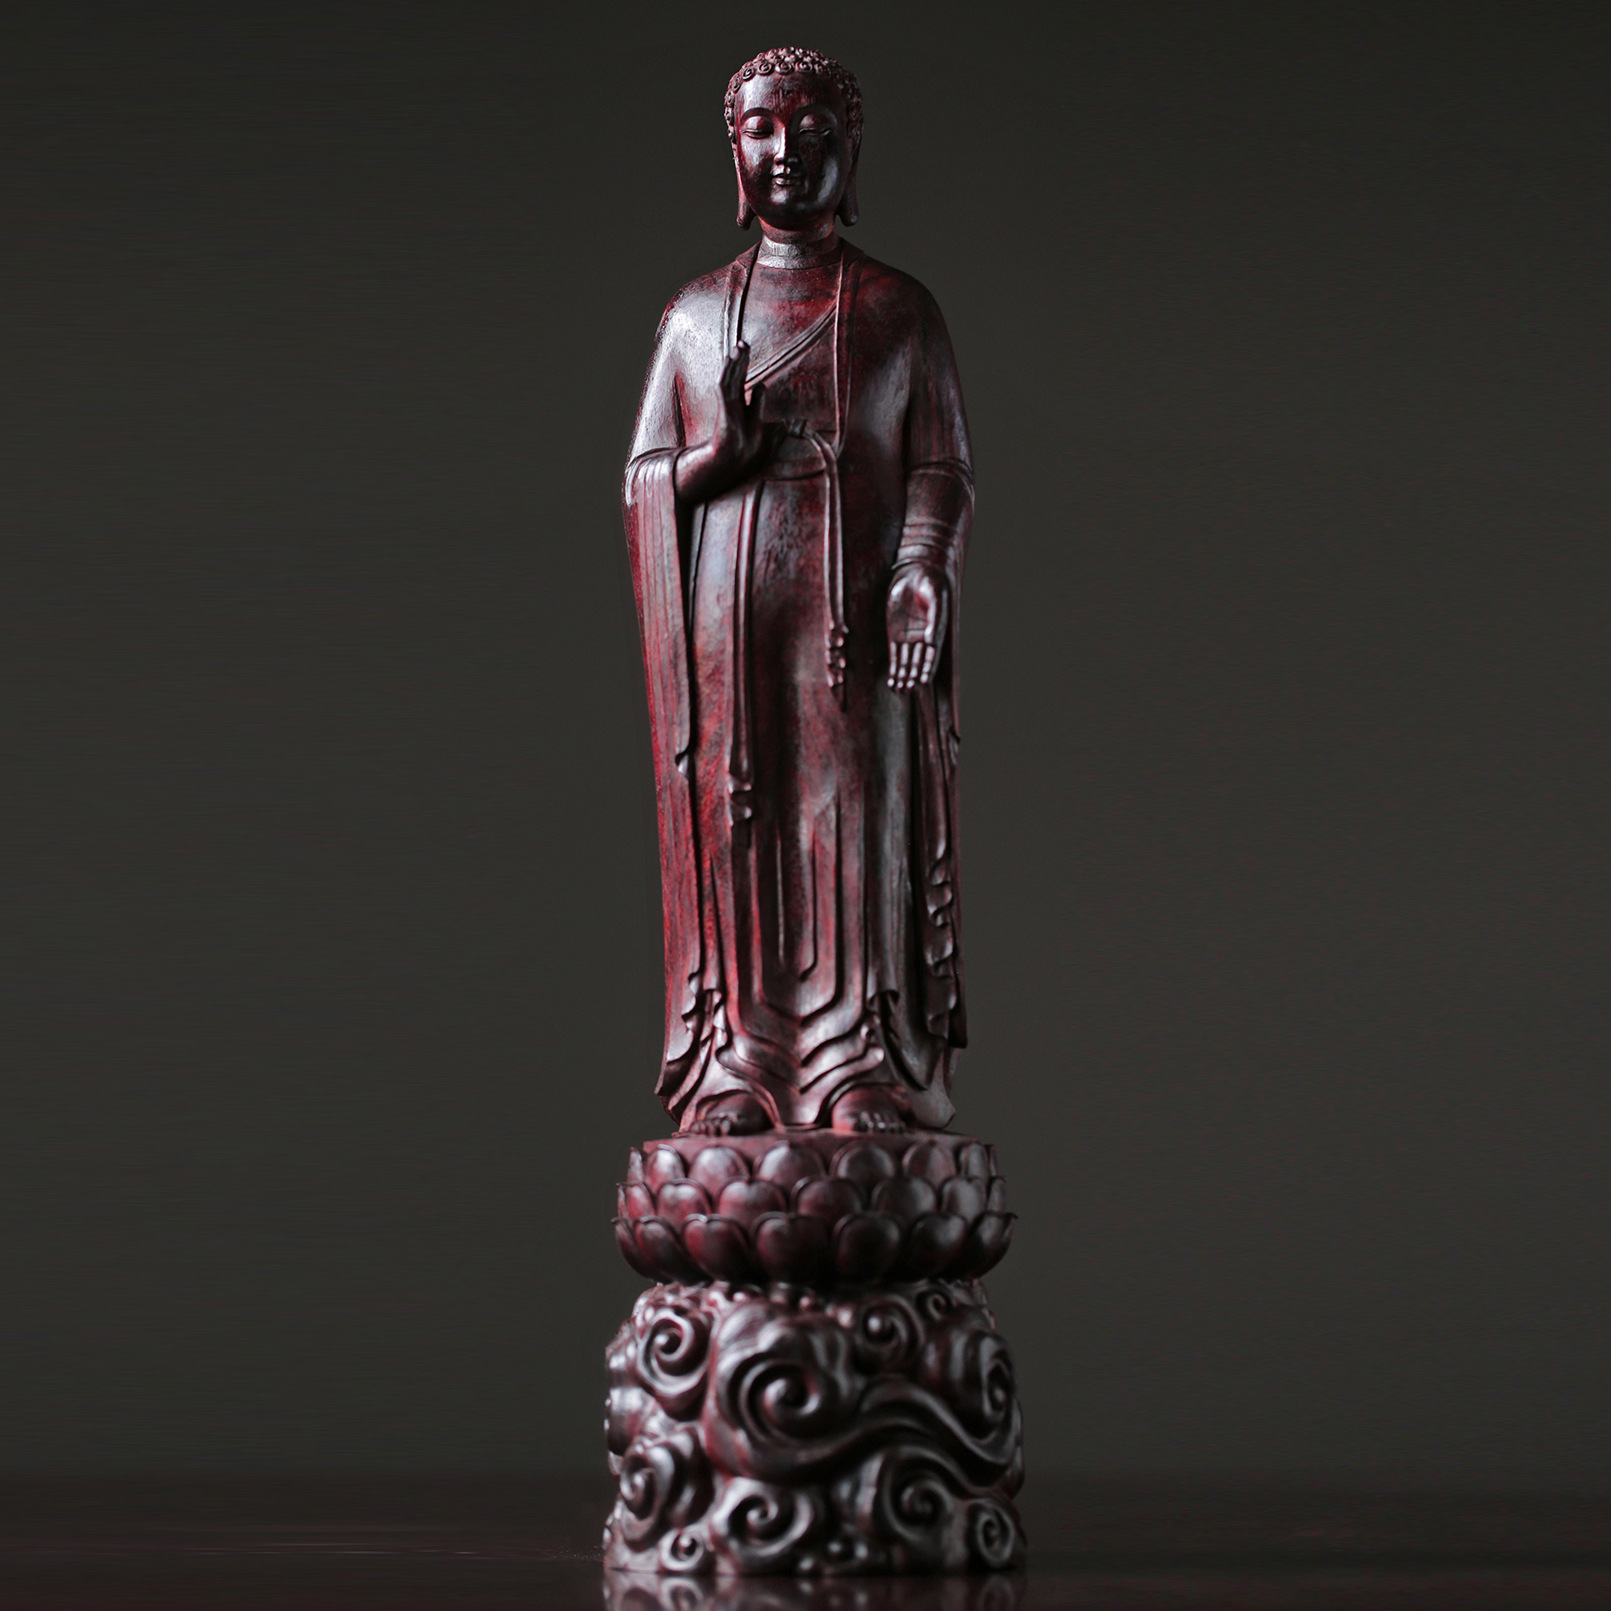 Indian red sandalwood plain clothes Sakyamuni Buddha ornaments: gifts from high-density old material masters hand-made art and woodcarving collection